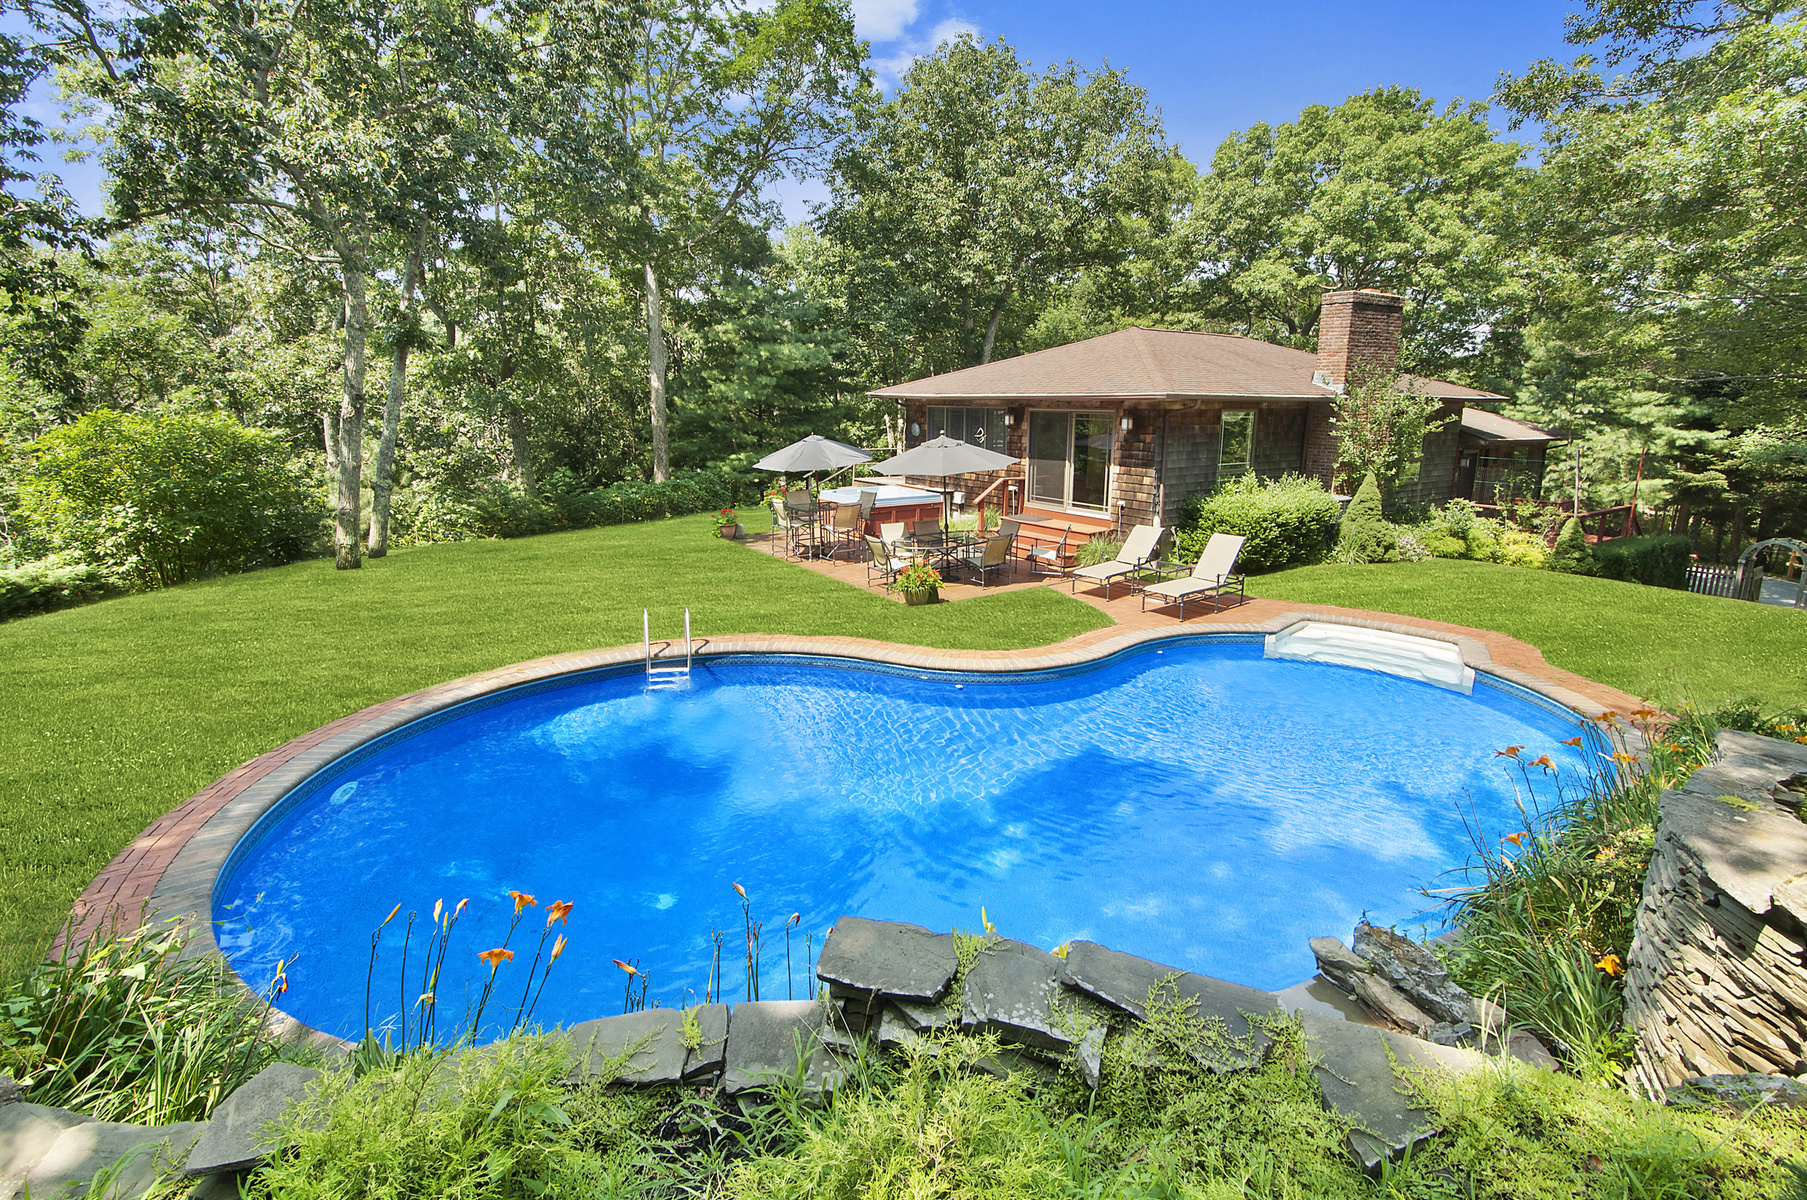 3 Quadrant Hill Rd - East Hampton NW, New York